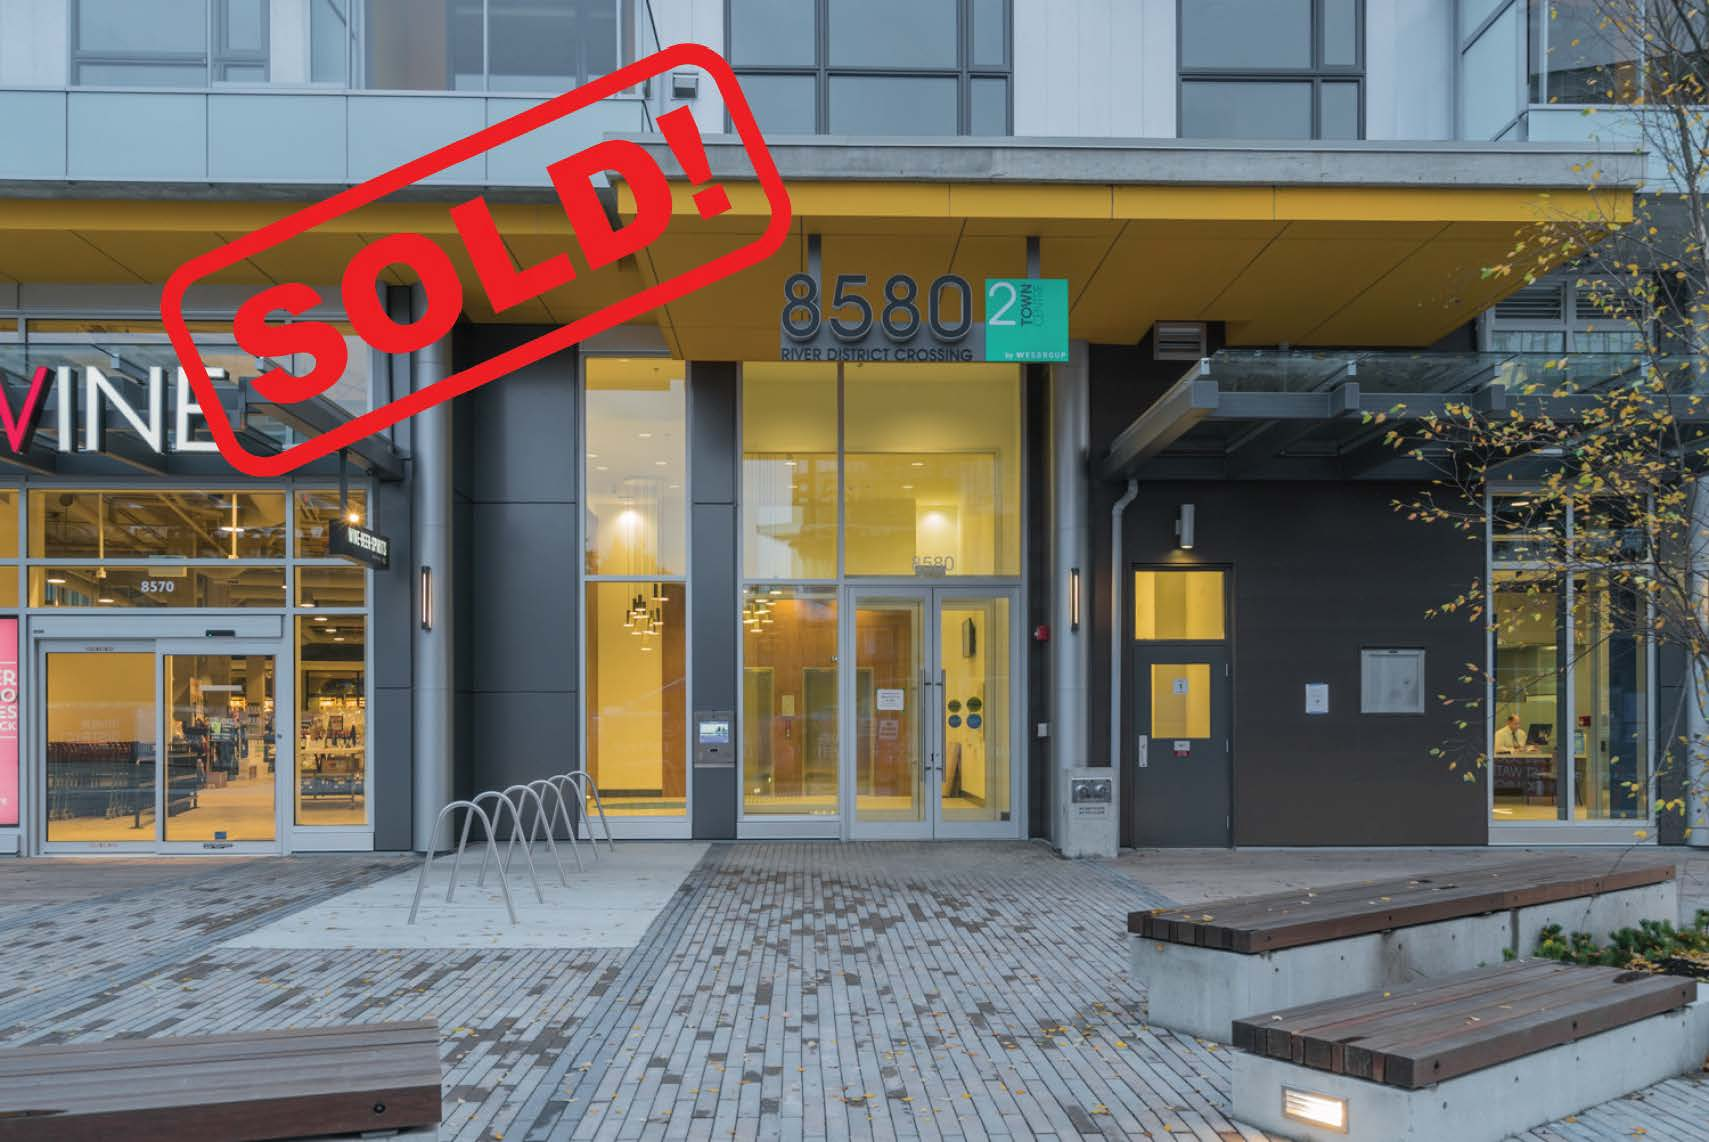 310-8580 River District Crossing   SOLD FOR: $701,000  2 BED | 2 BATH | 945 SF